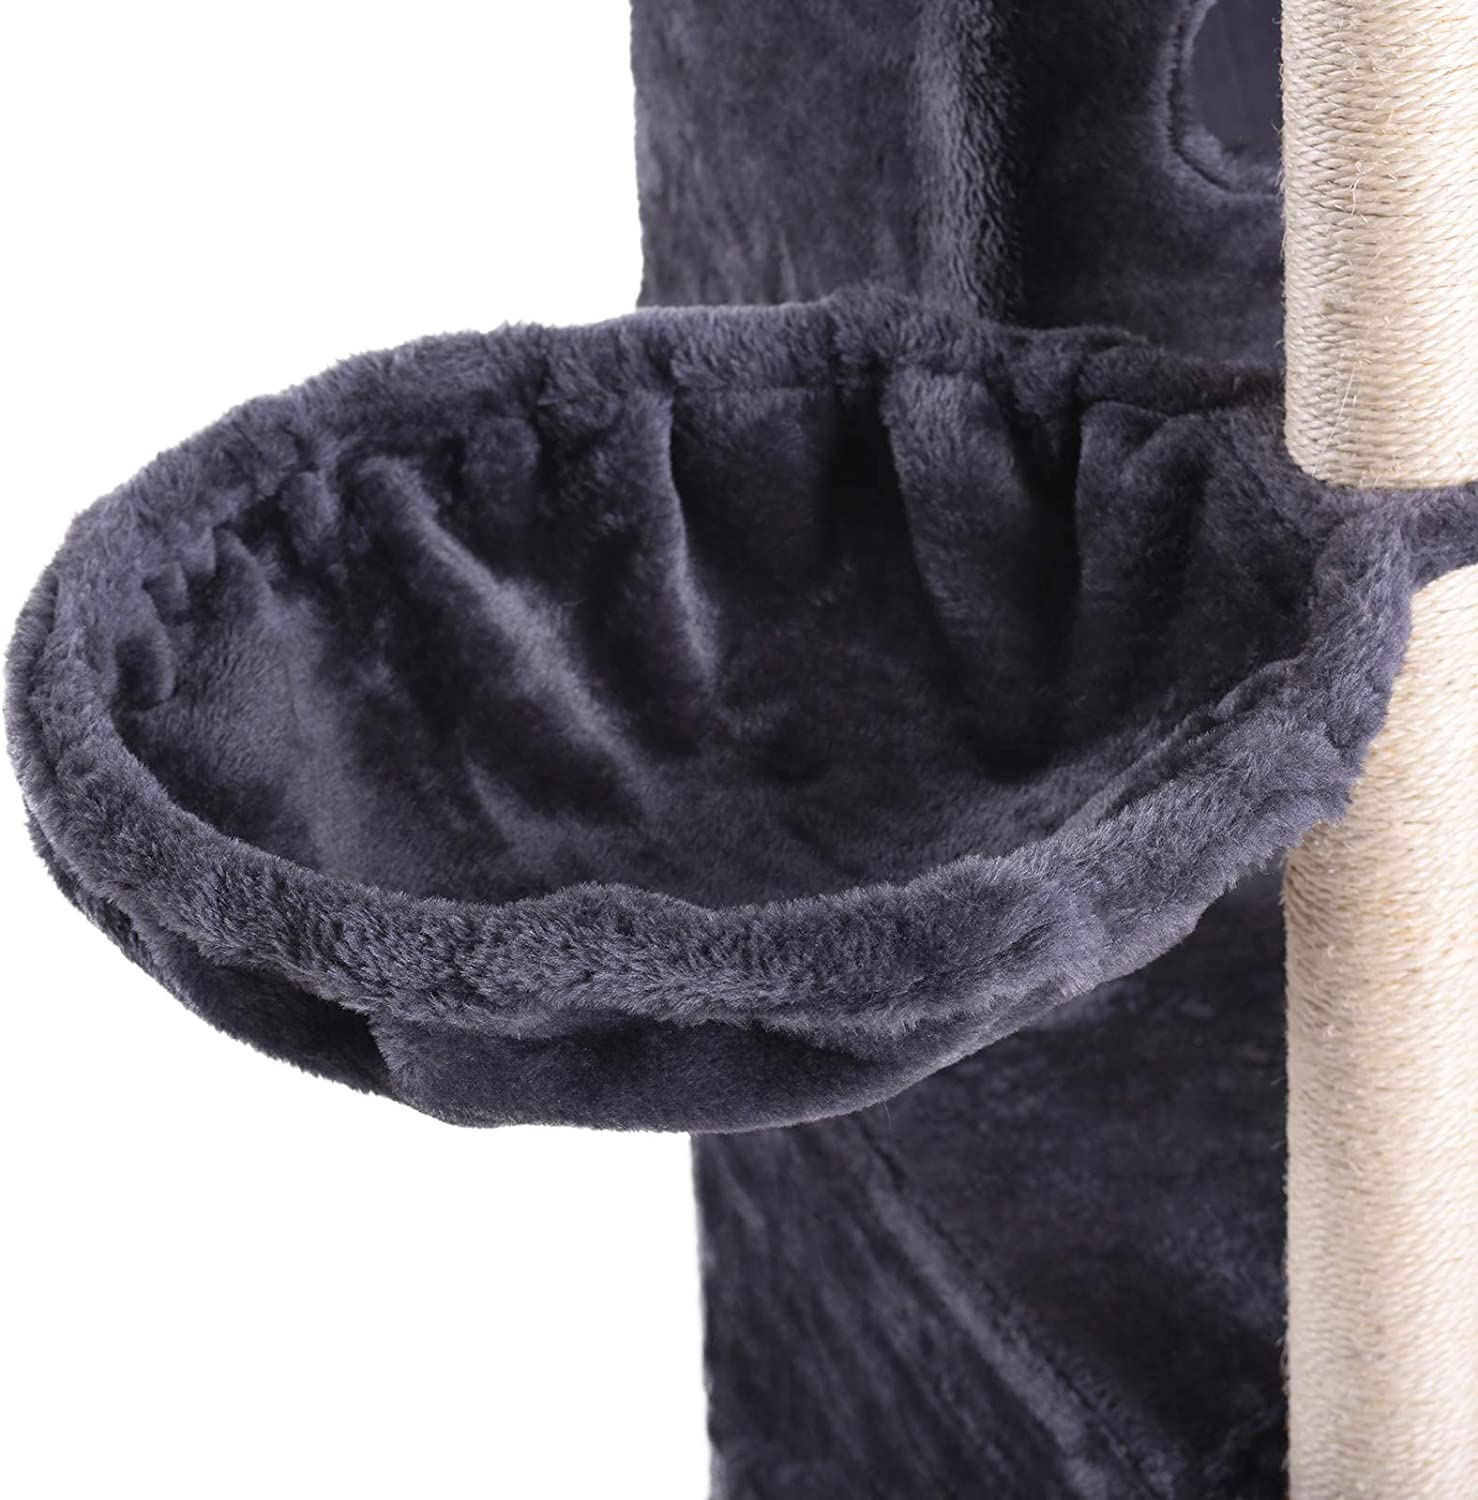 Hey-brother Multi-Level Cat Tree Condo Furniture with Sisal-Covered Scratching Posts 2 Plush Condos Plush Perches Cats and Pets for Kittens